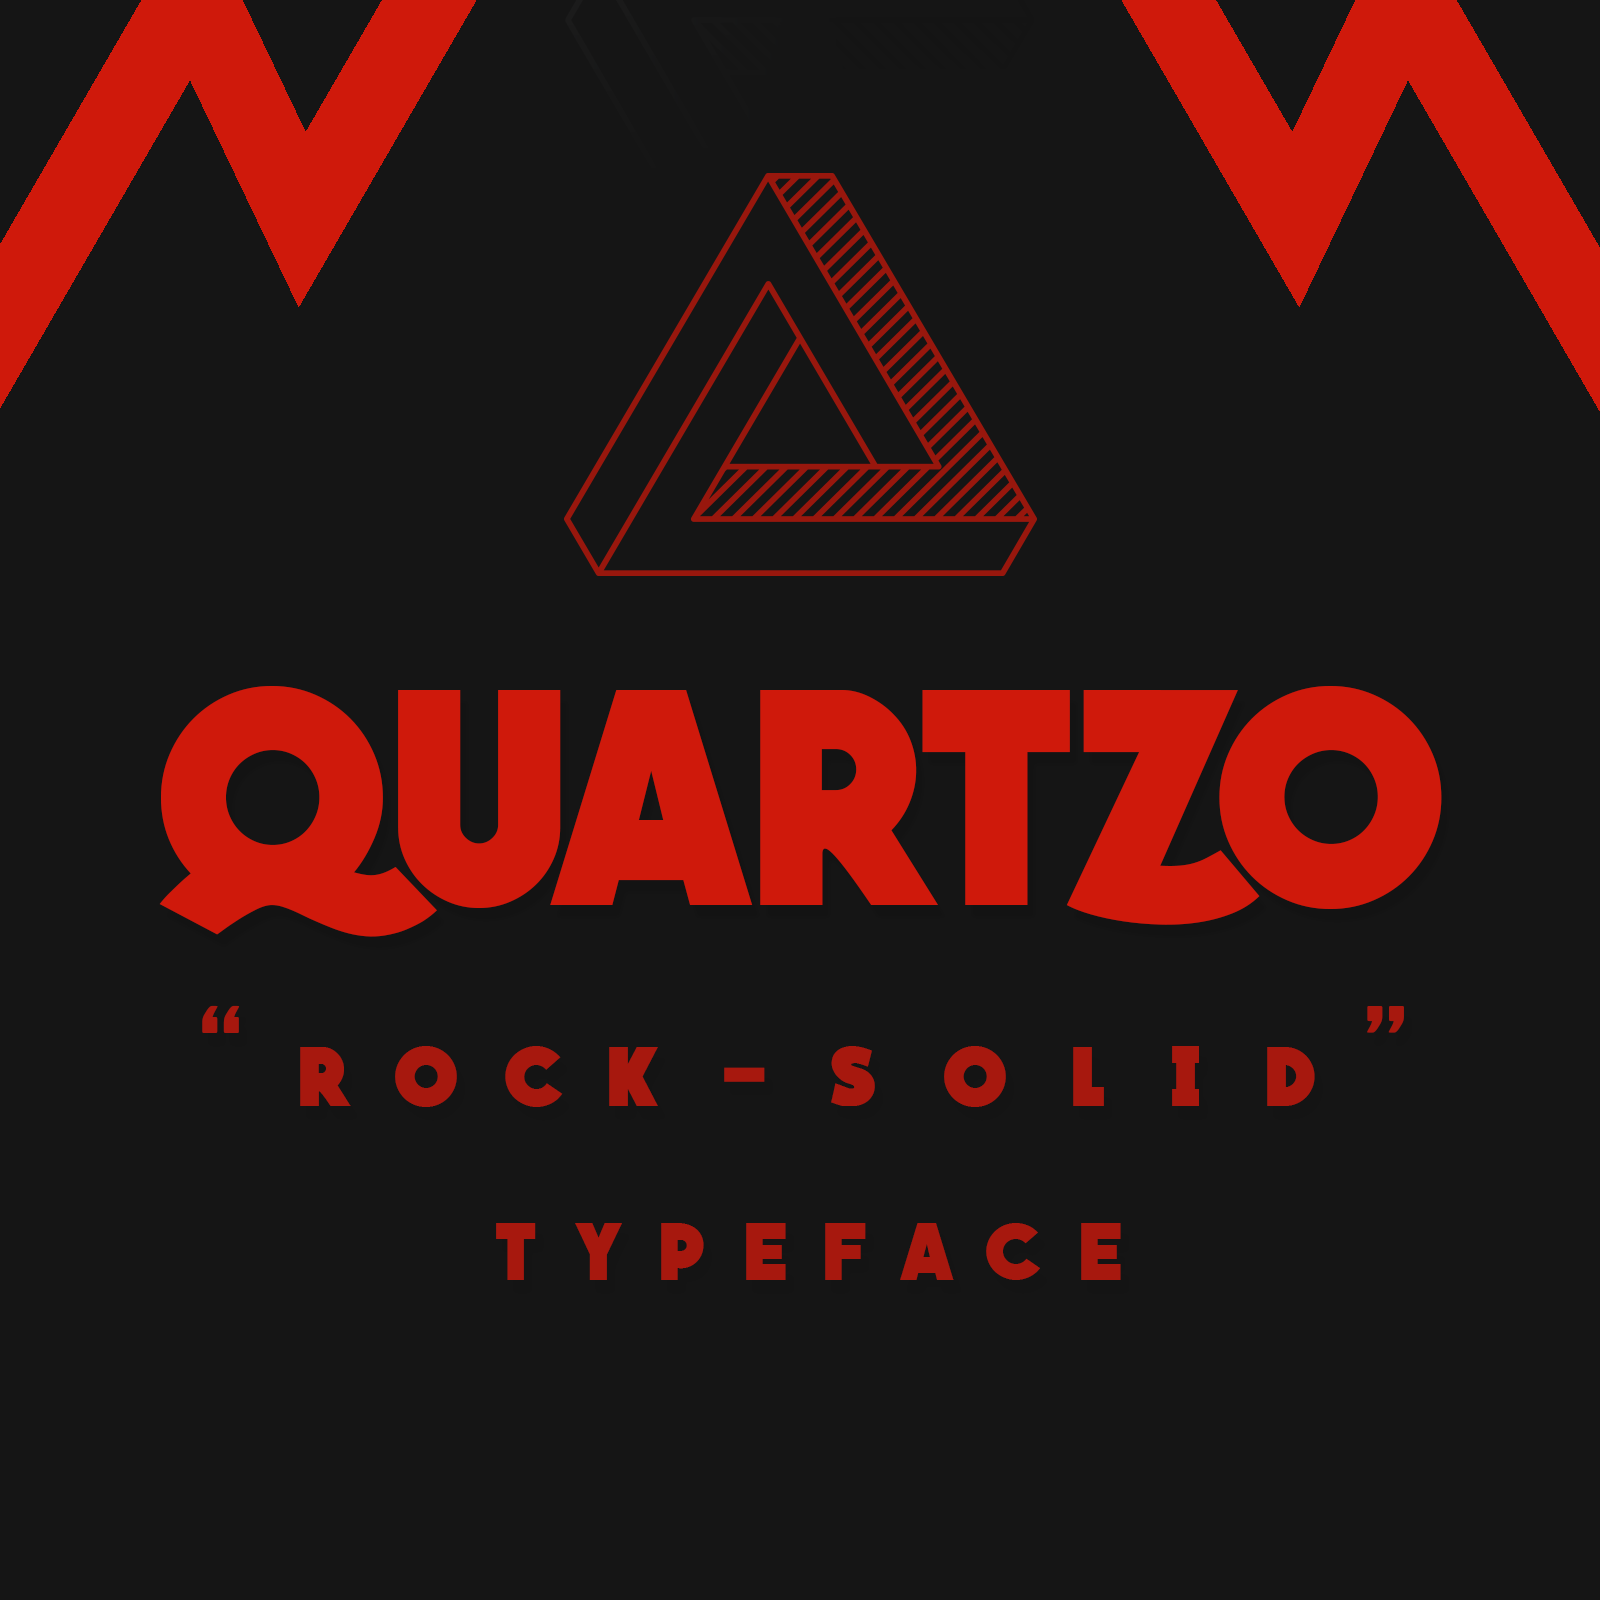 Tech Fonts - 1560 styles - FontSpace